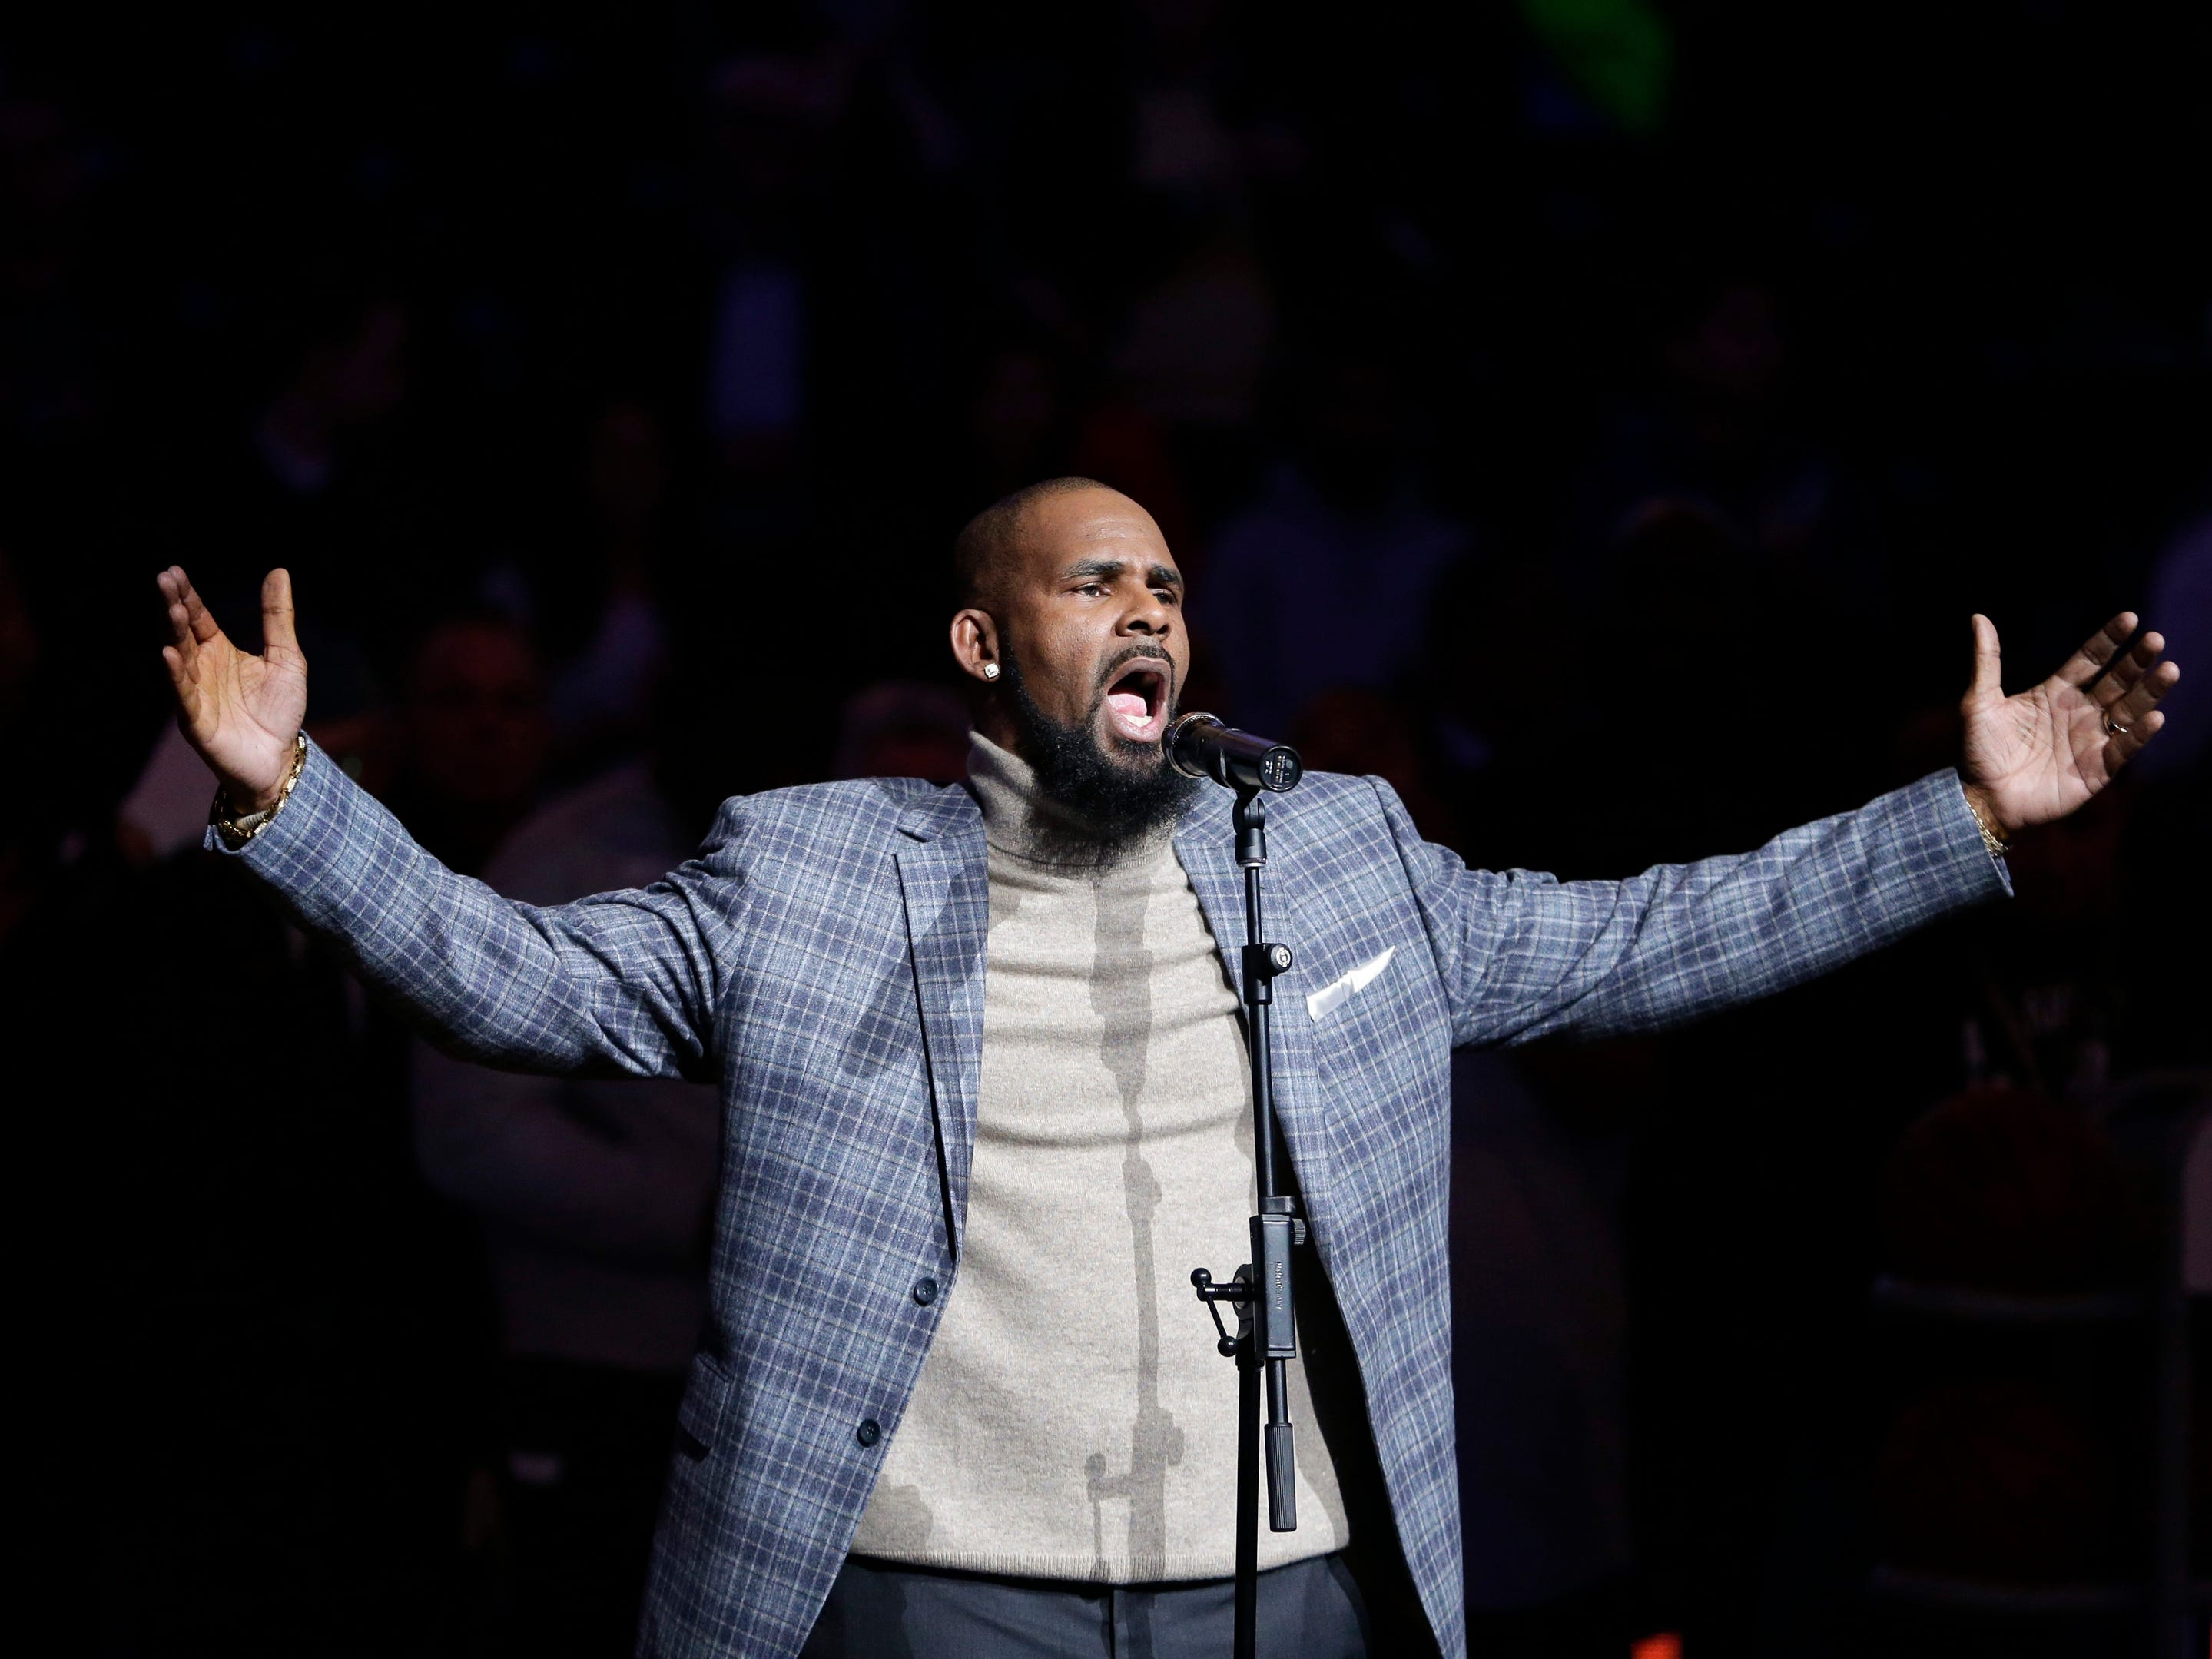 R. Kelly performs the national anthem before an NBA basketball game between the Brooklyn Nets and the Atlanta Hawks in New York on Nov. 17, 2015.